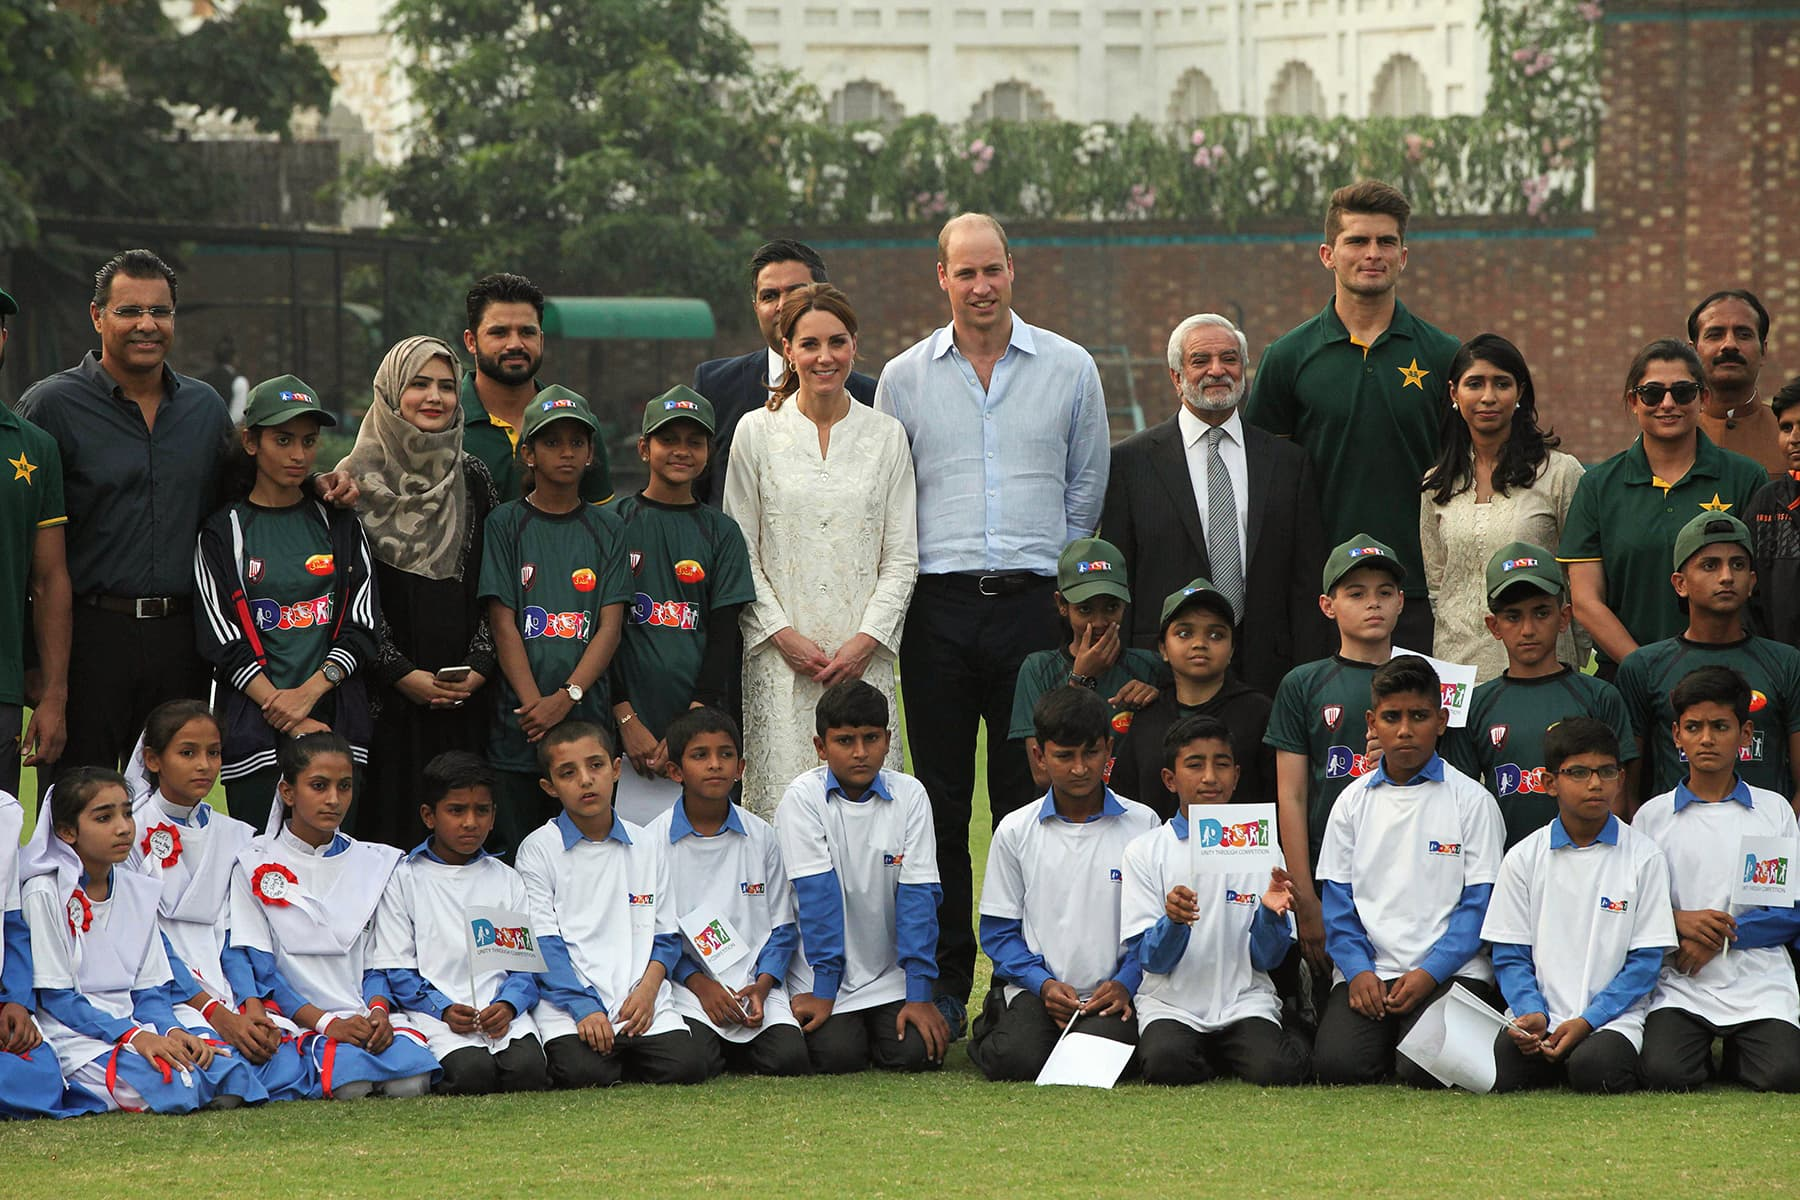 Prince William, Duke of Cambridge and his wife Catherine (C-L), Duchess of Cambridge pose for a photograph along with Pakistan Cricket Board Chairman Ehsan Mani (C-R) and cricketer Shaheen Afridi (C-2R) during their visit at the National Cricket Academy in Lahore on October 17. — AFP